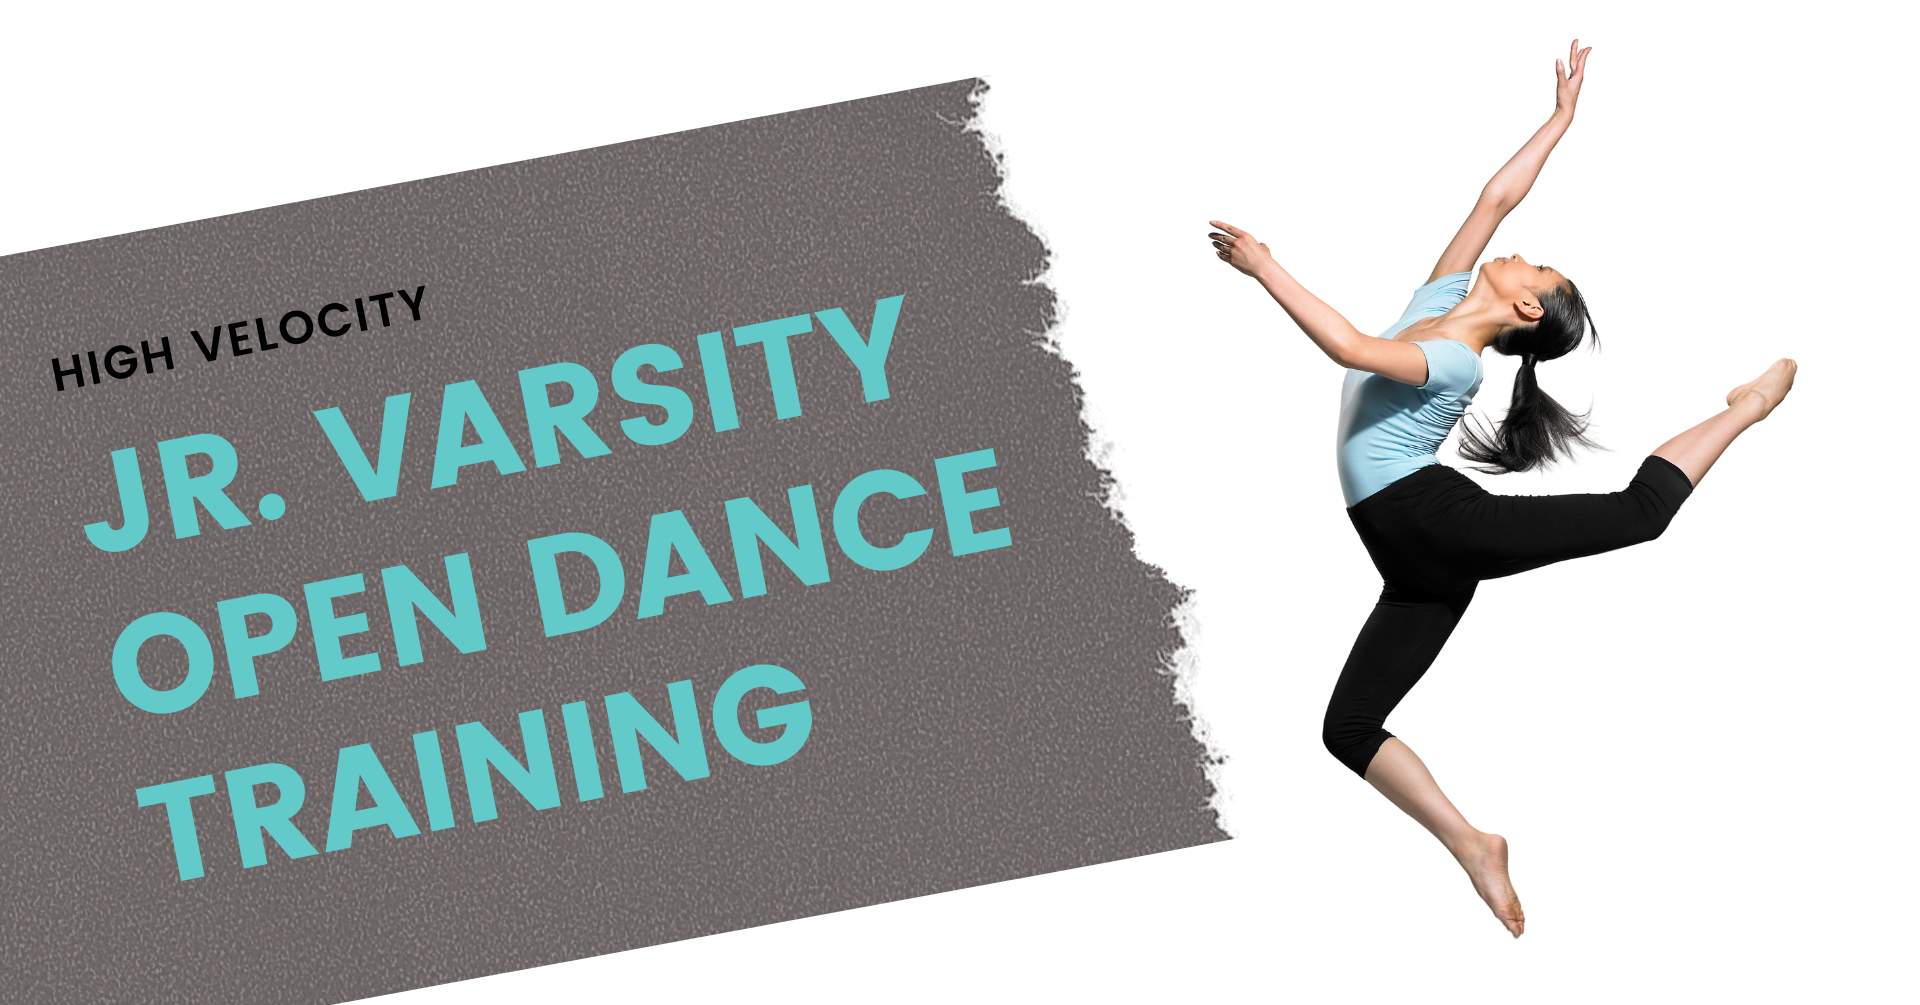 High Velocity JR. Varsity | Open Dance Training